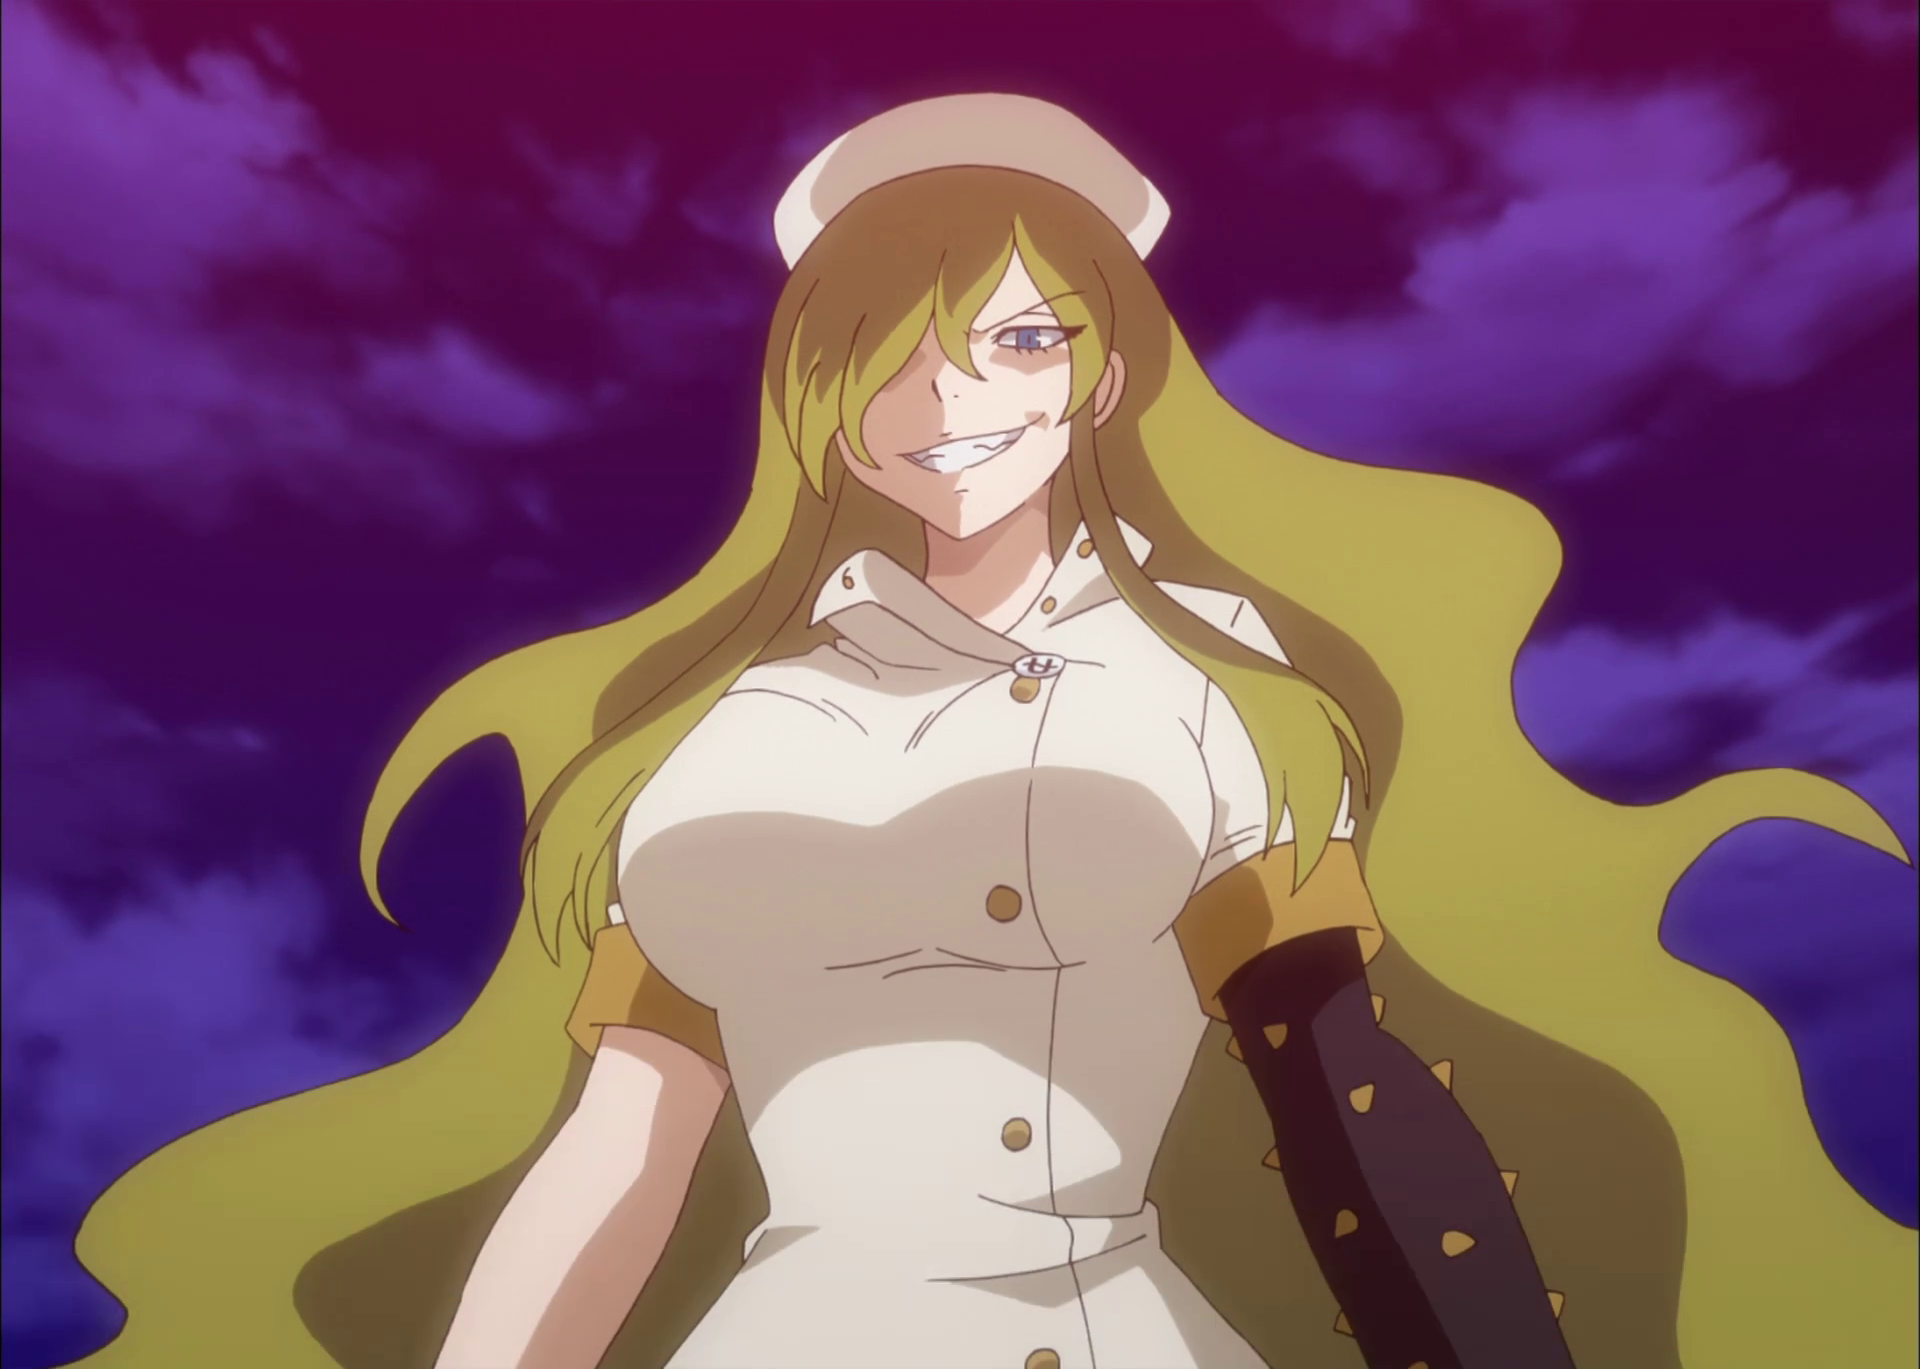 image eclipse ophiuchus stitched cap fairy tail ep 215